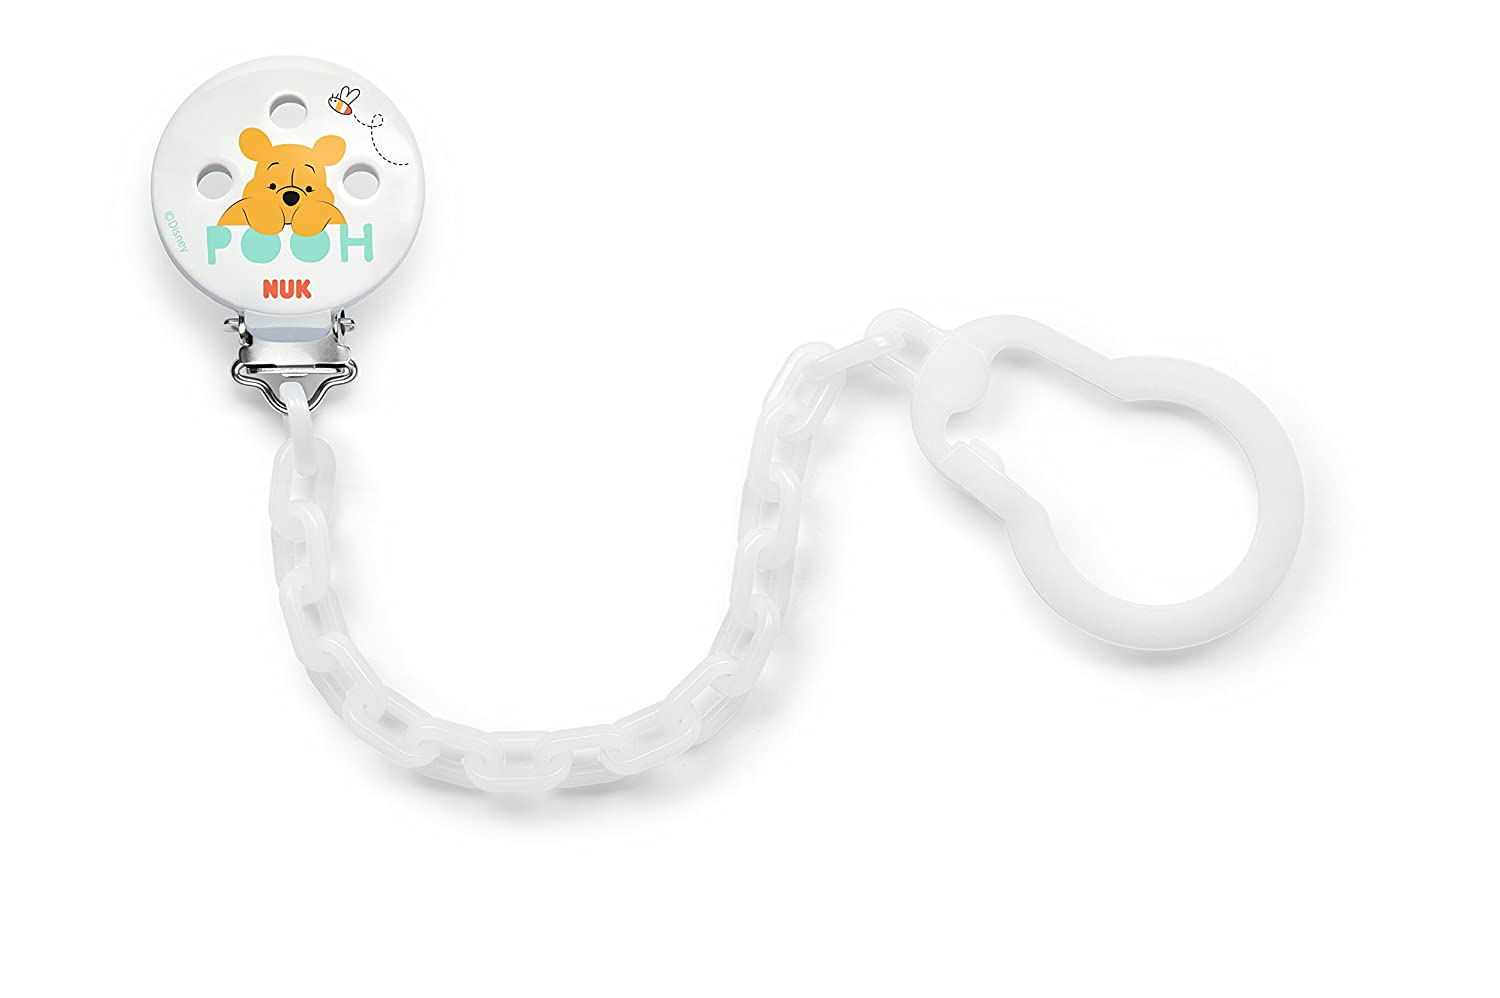 Nuk, Disney Winnie The Pooh Baby's Dummy Pendant with Clip for attaching The Dummy to Clothes, Pack of 1